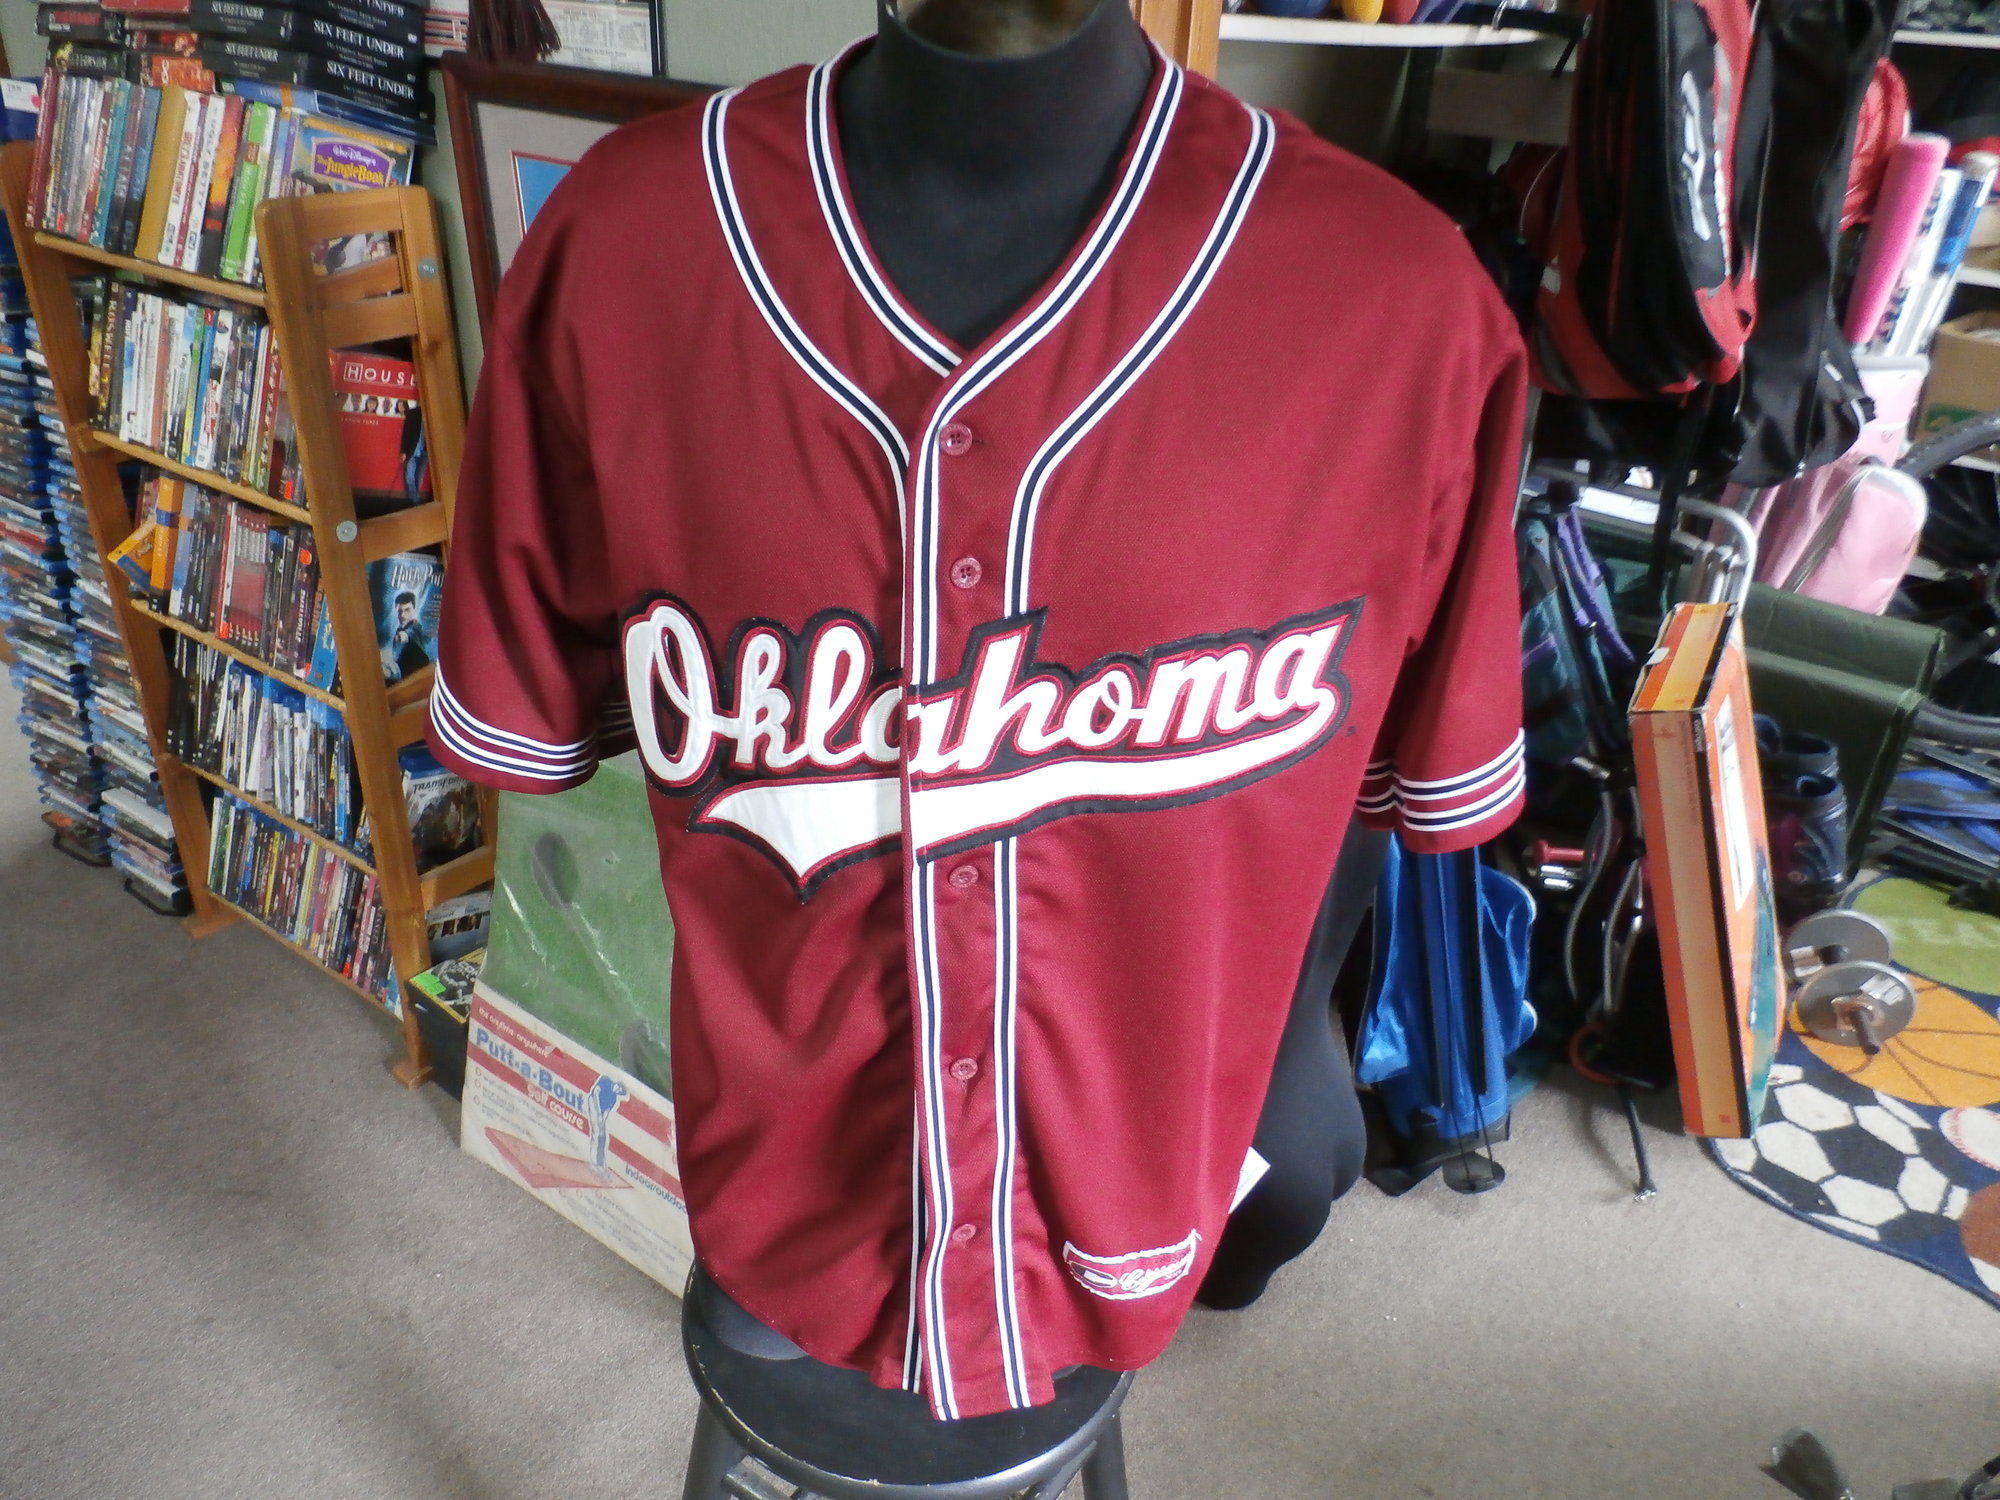 Oklahoma Sooners Colosseum jersey Large #25429<br /> Our Clothes Rating: 3 - Good Condition<br /> Brand: Reebok<br /> size: Men&#039;s Large- (Across chest: 24&quot; Length: 29&quot;)<br /> color: red<br /> Style: short sleeve; embroidered; button up<br /> Condition: 3- Good Condition - some pilling and fuzz; some fading and discoloration; wrinkles; some stretching and wear from washing and wearing; small snags throughout; no stains; no rips or tears<br /> Shipping: FREE<br /> Item #: 25429